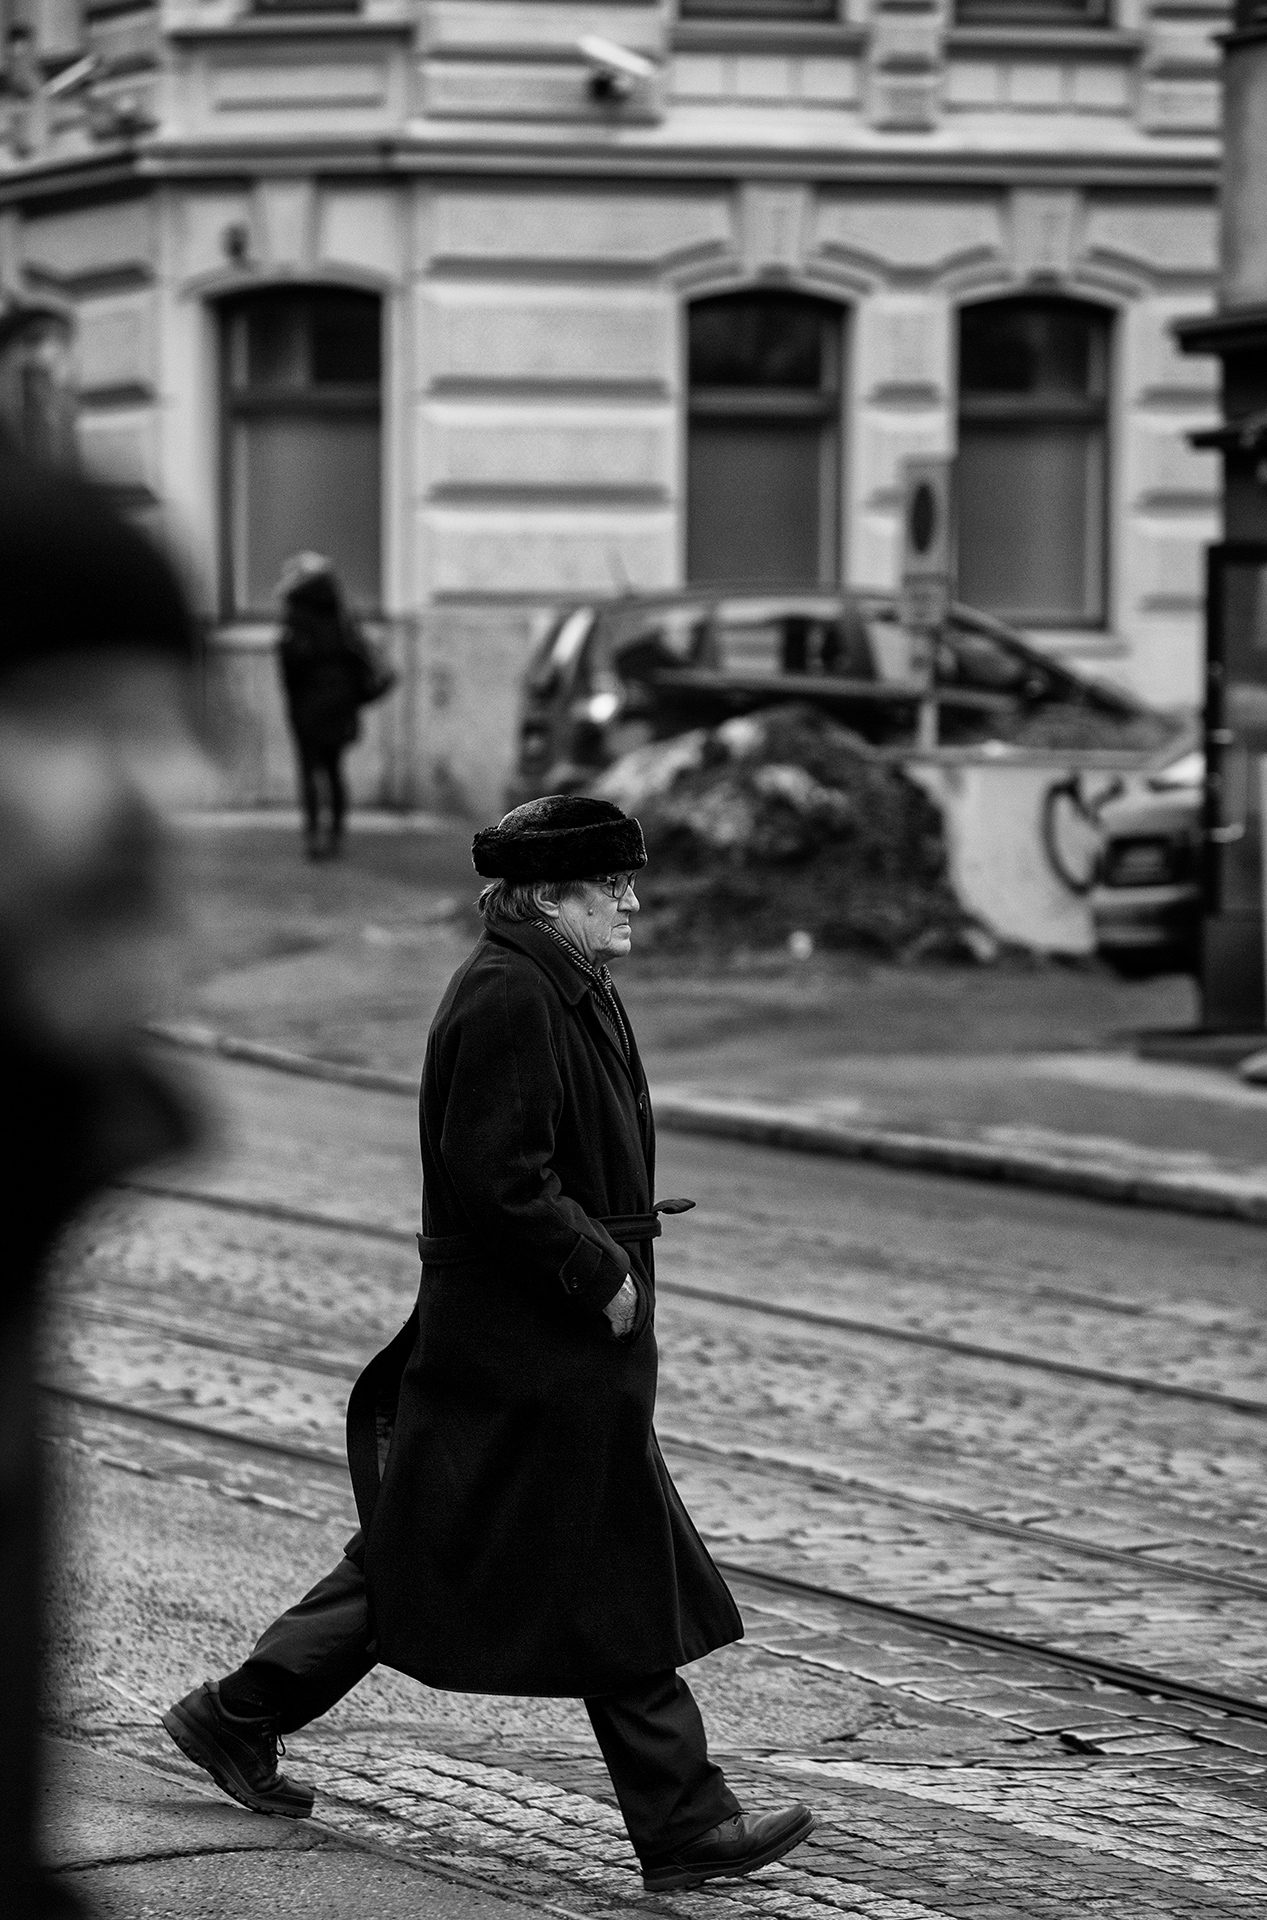 Walker, Helsinki, Finland, street, black, Scandic, style, dark, gothic, man walking